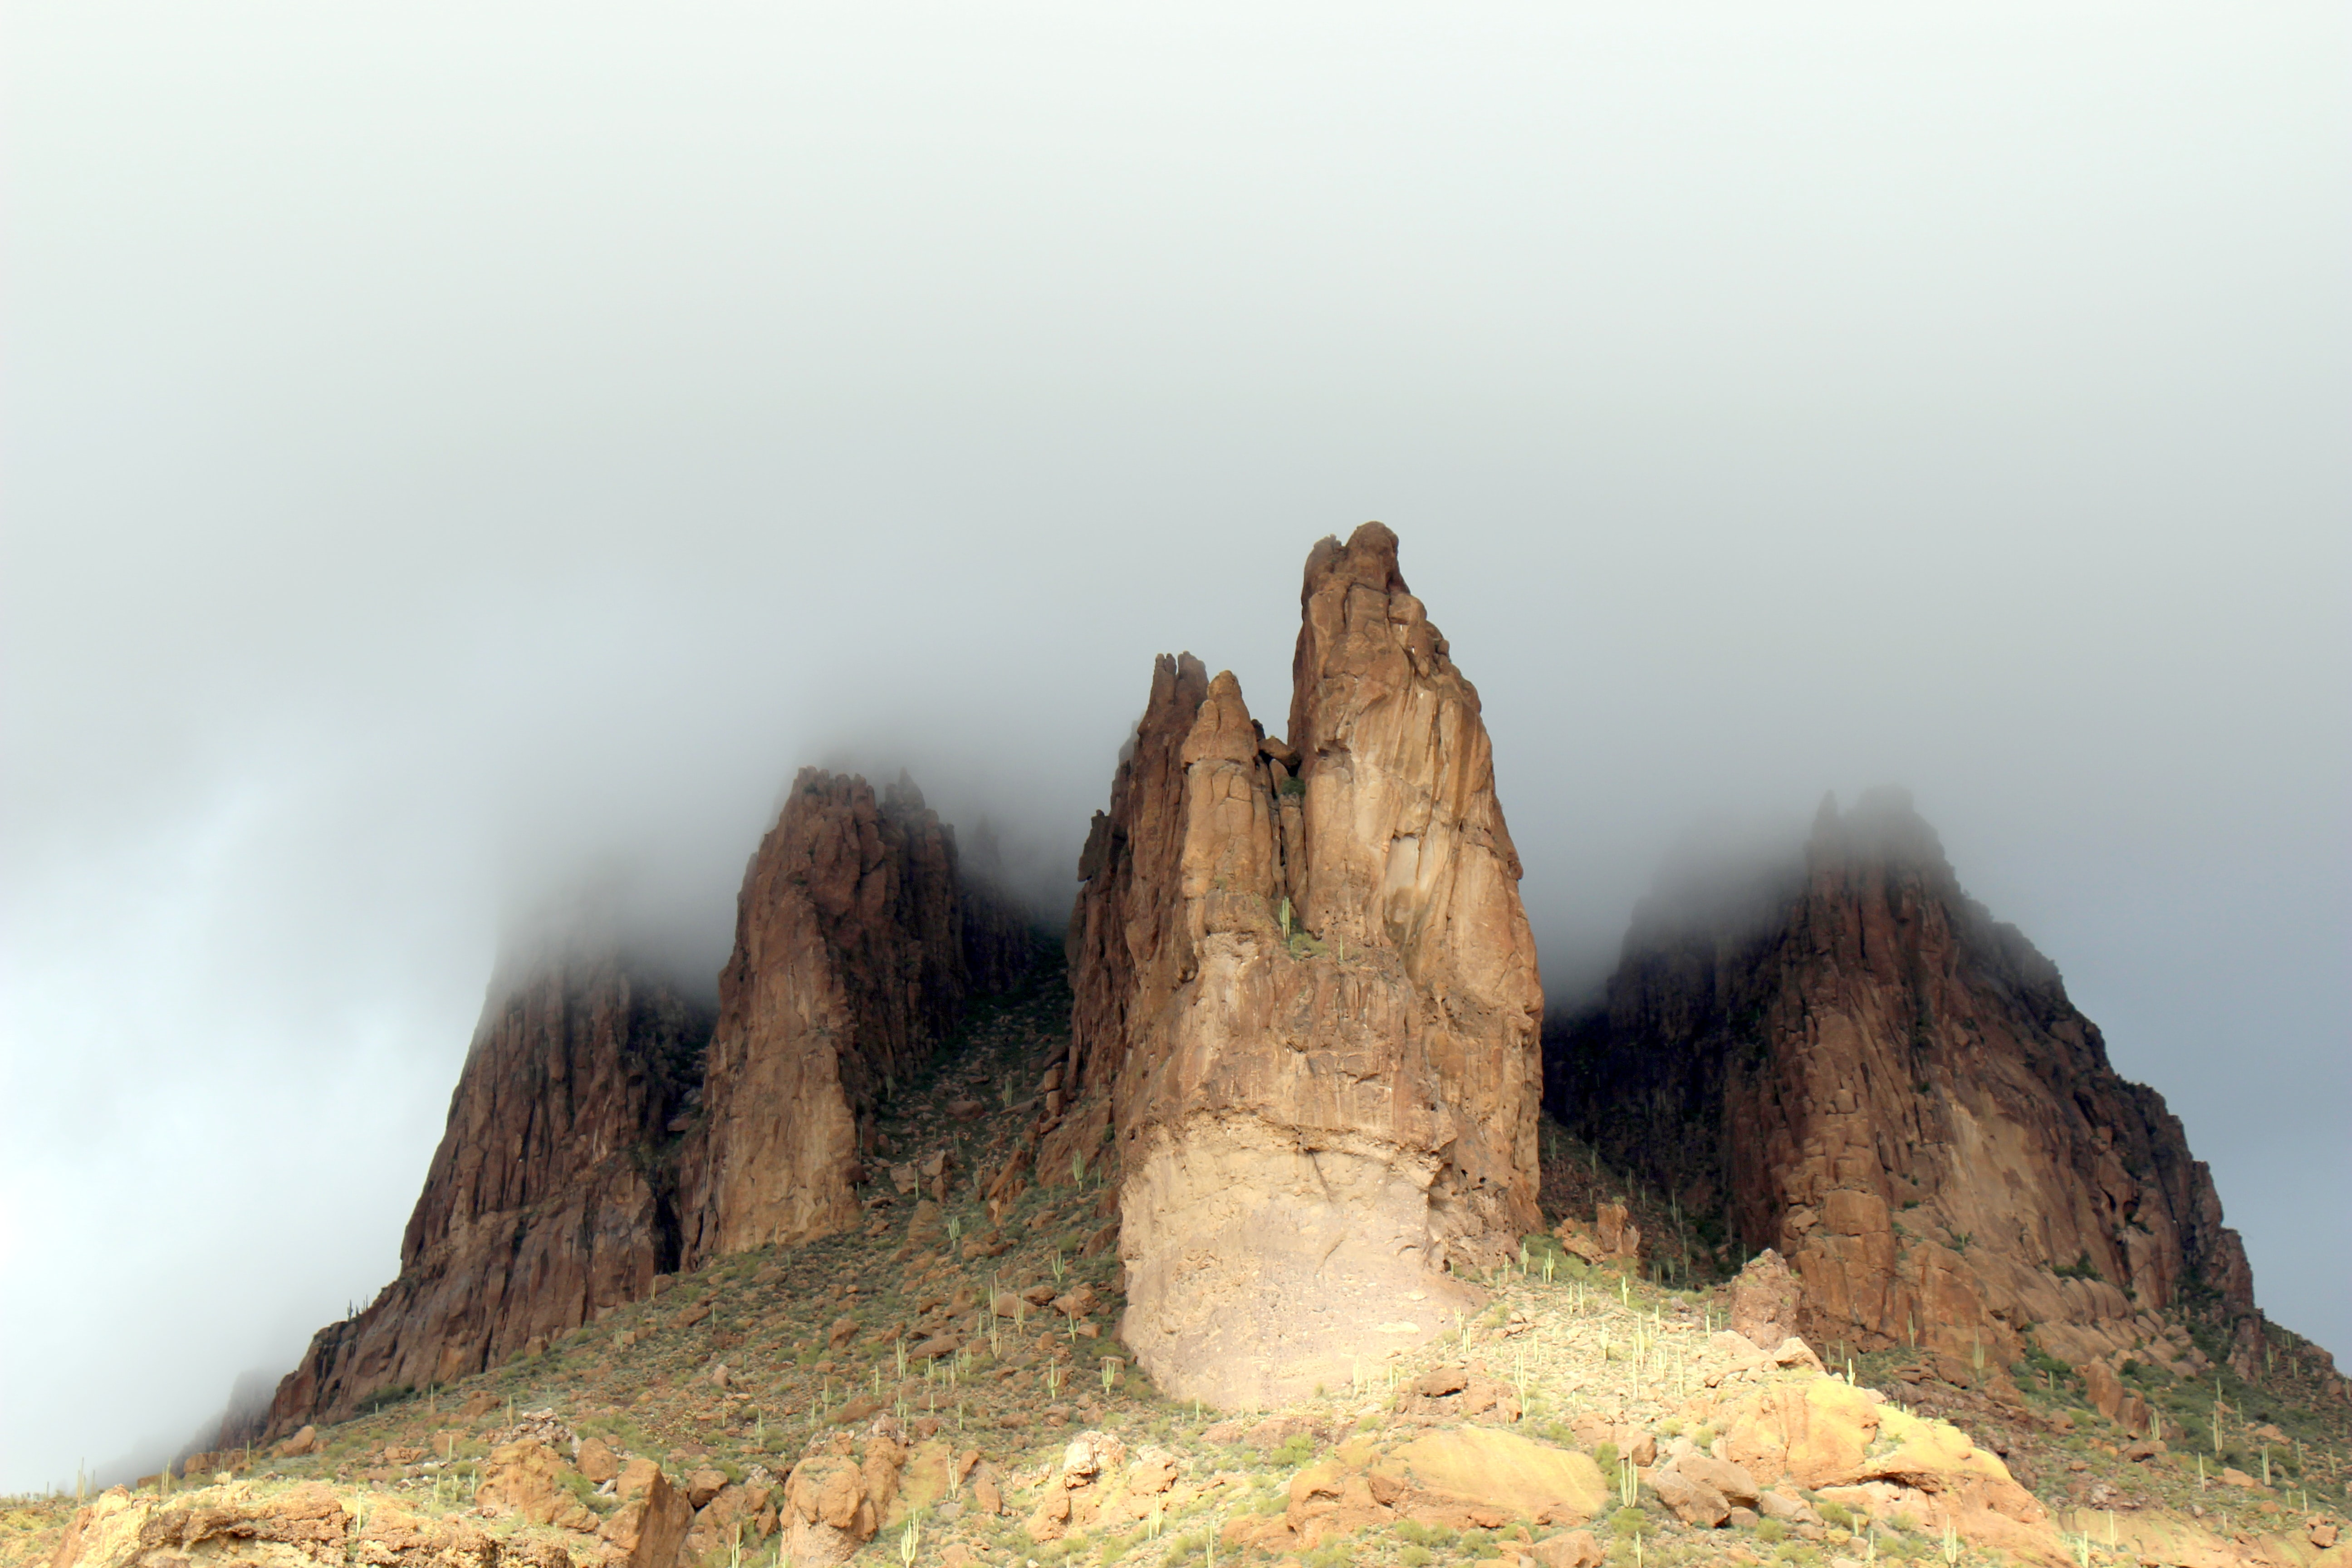 Fog covers the rocky peaks of the mountainside in Gold Canyon